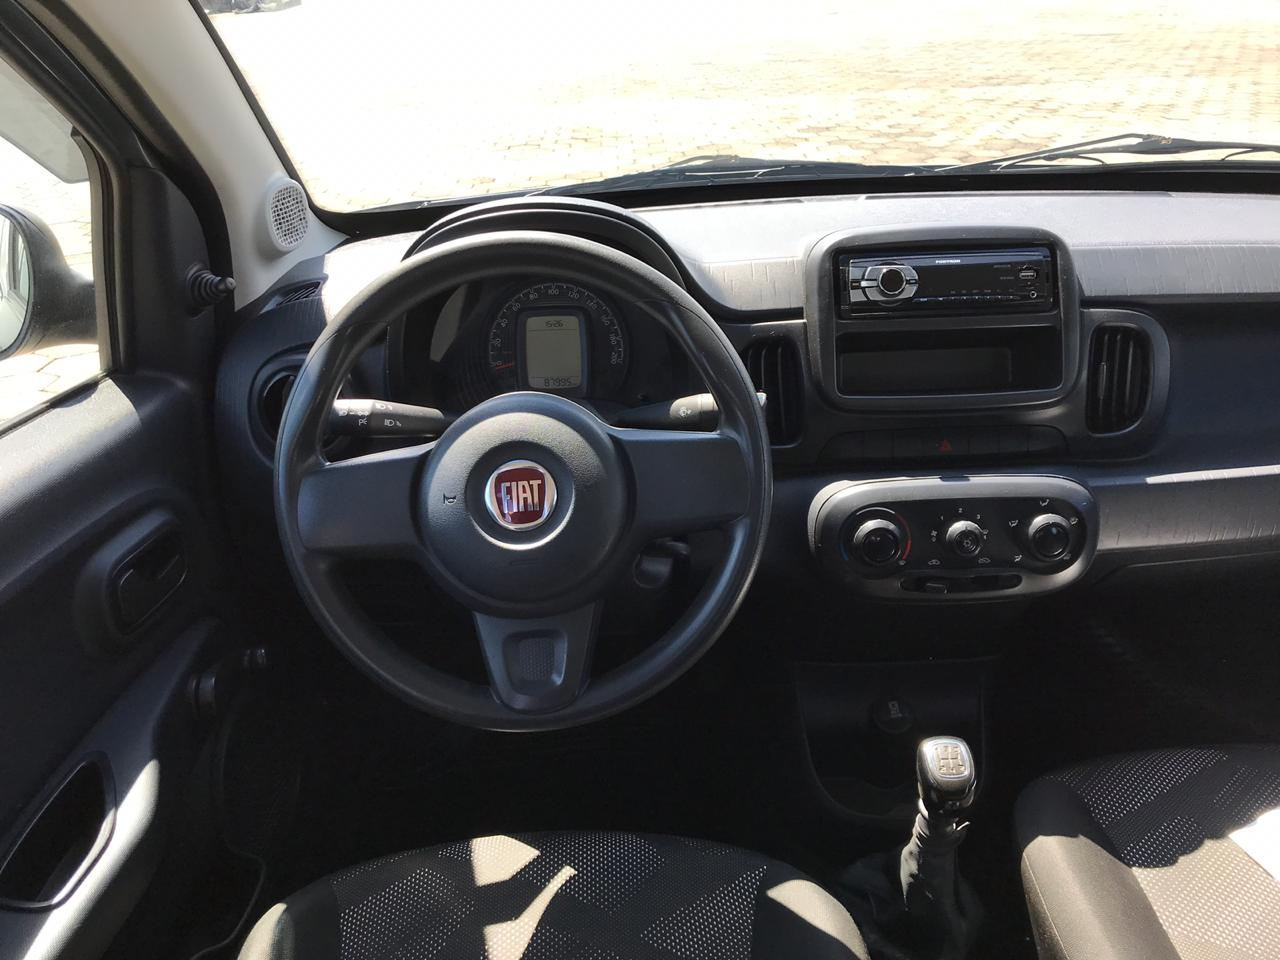 FIAT MOBY EASY ON 1.0 2017